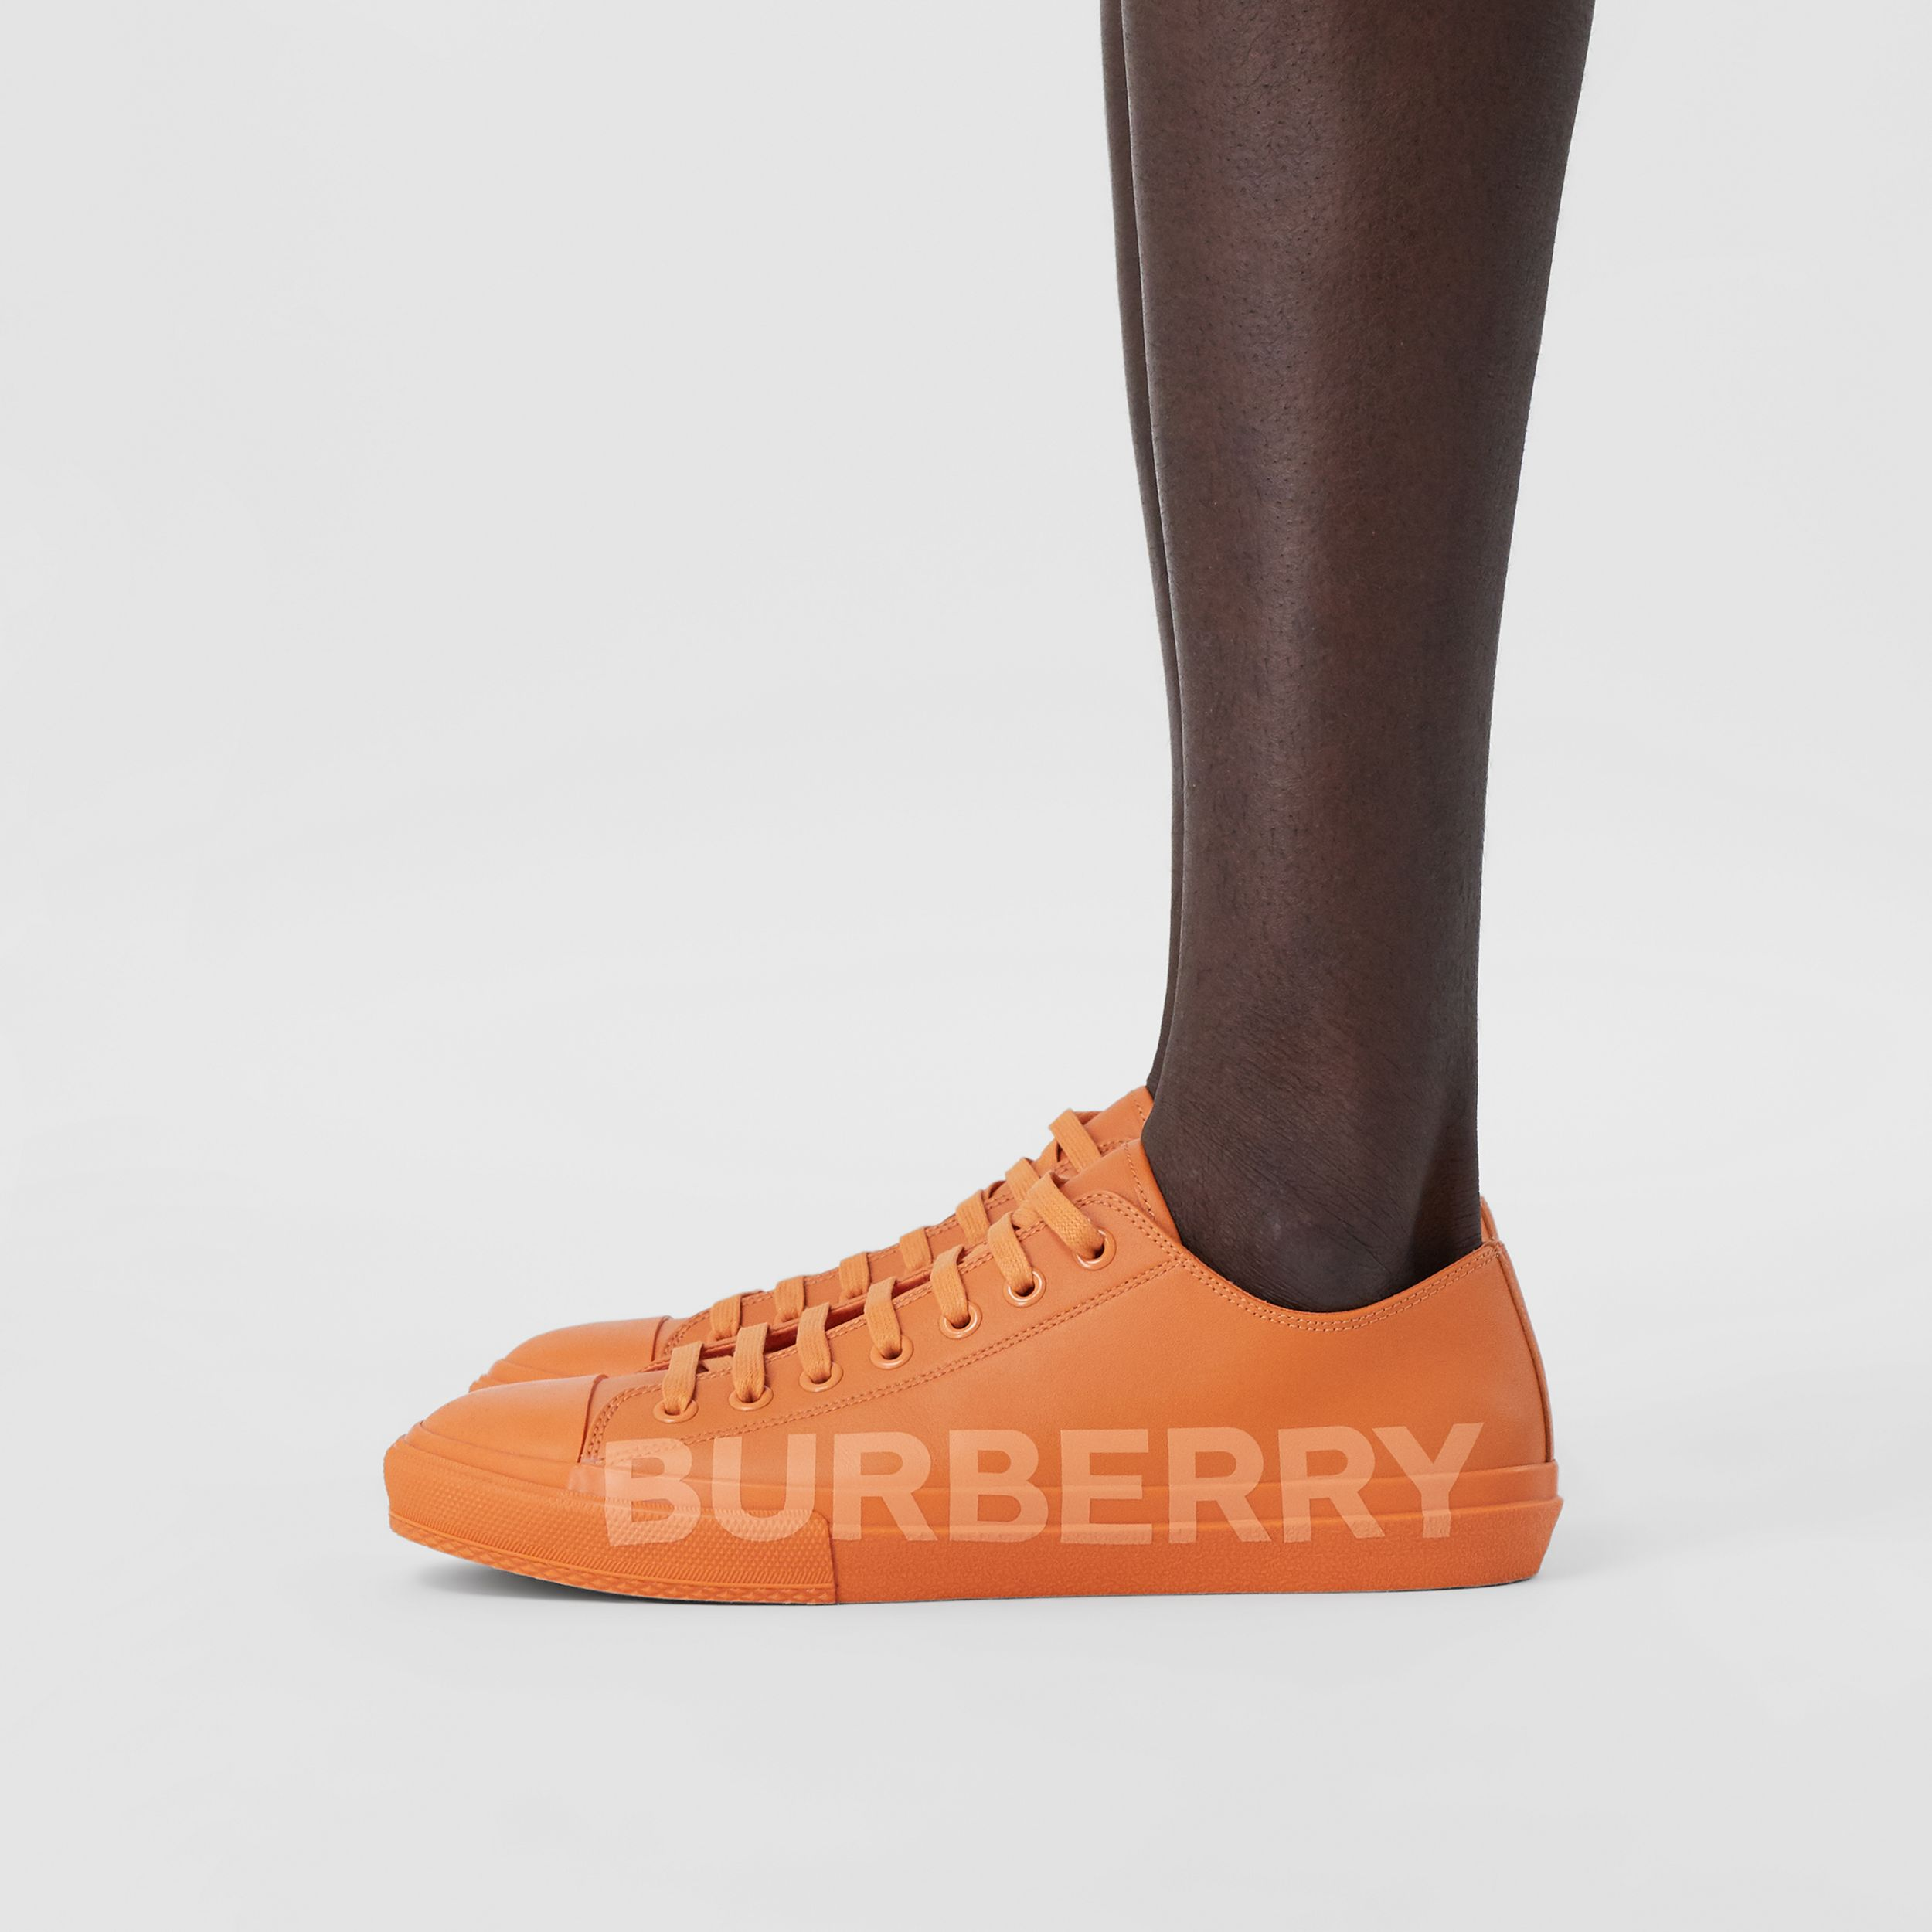 Logo Print Leather Sneakers – Online Exclusive in Deep Orange - Men | Burberry United States - 3